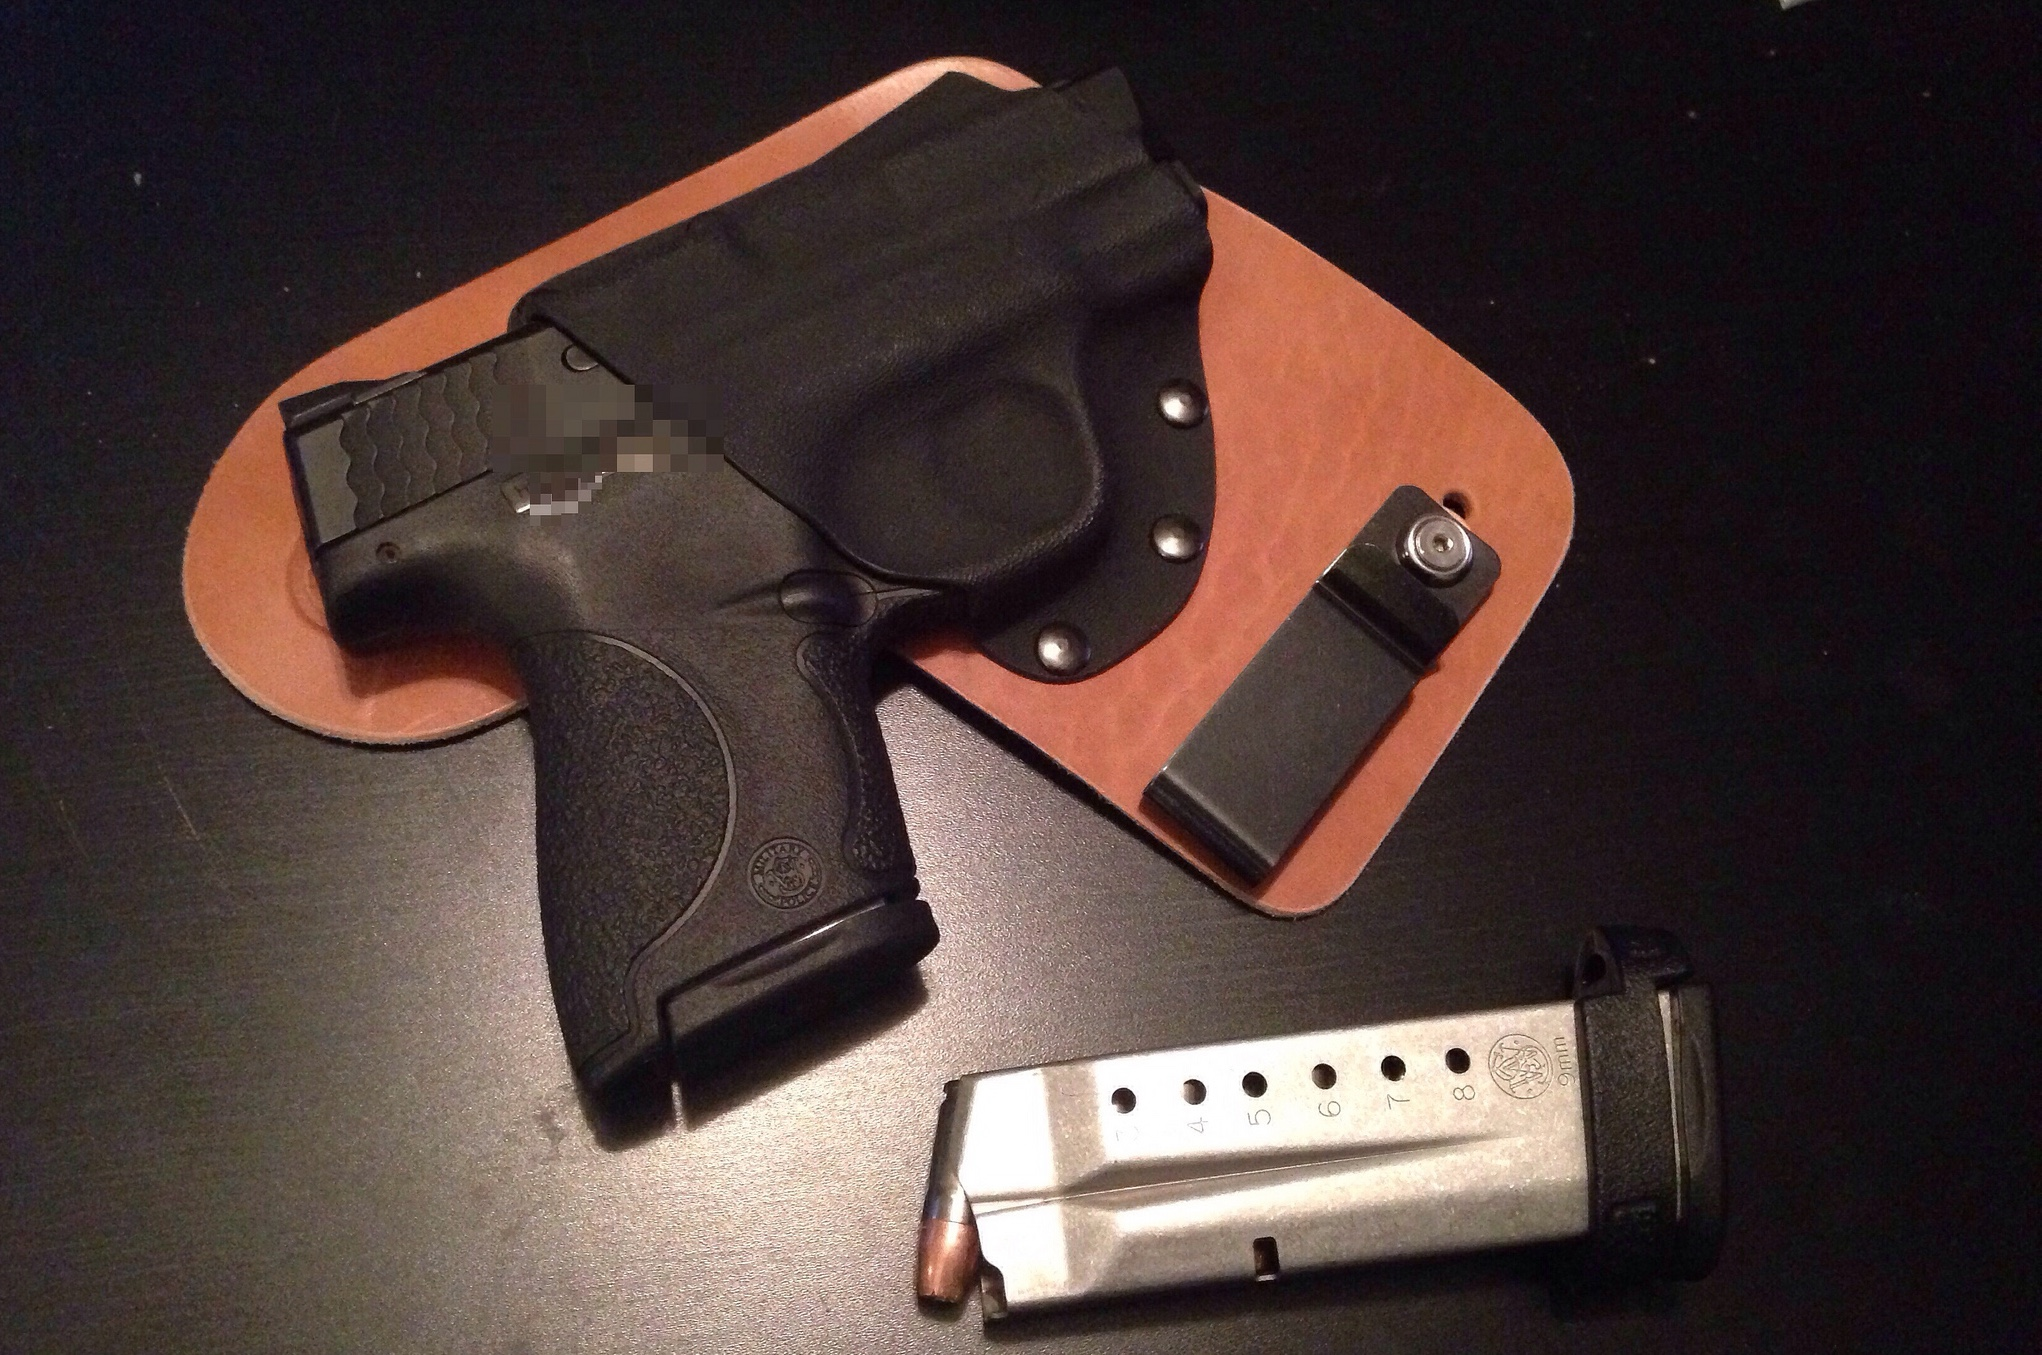 The Best IWB Holster for Shield Smith & Wesson M&P [OUR TOP 4]